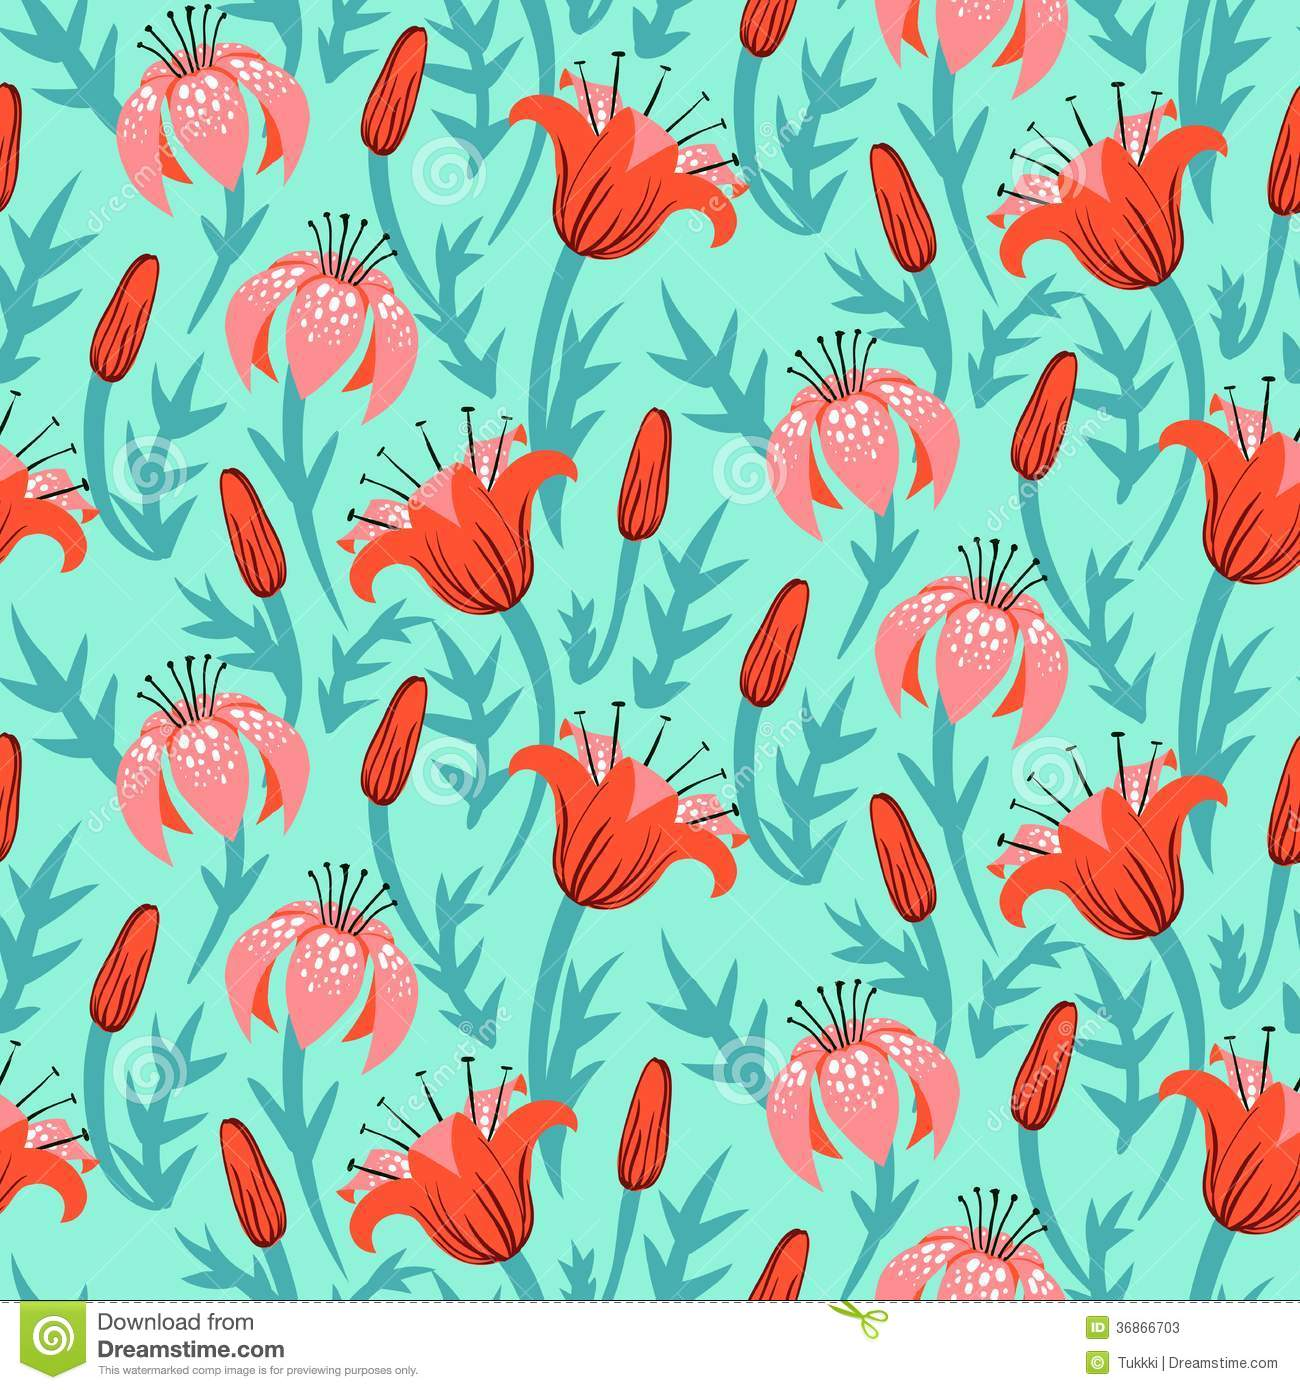 Turquoise wallpaper with pink flowers davidovic turquoise wallpaper with pink flowers turquoise wallpaper with pink flowers mightylinksfo